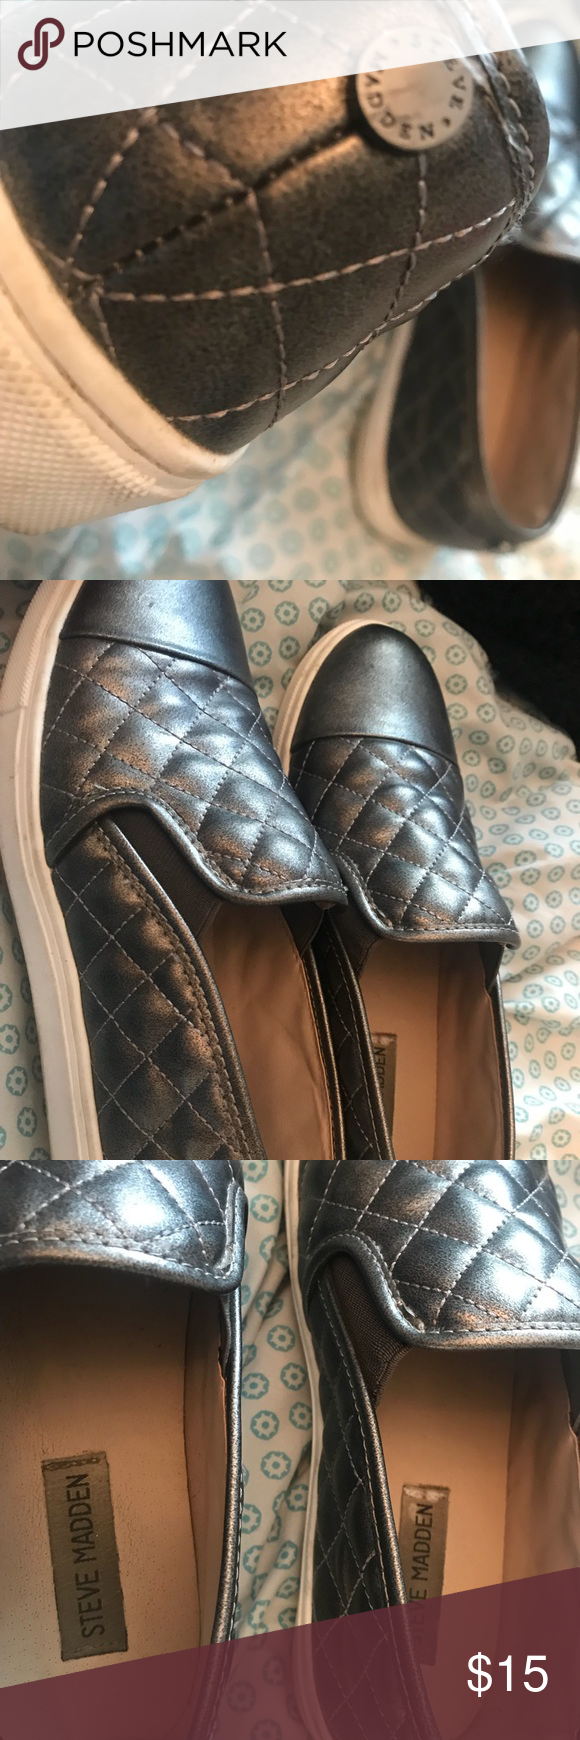 5d81e8b0011 Silver Steve Madden shoes Only worn a couple of times, Steve Madden ...